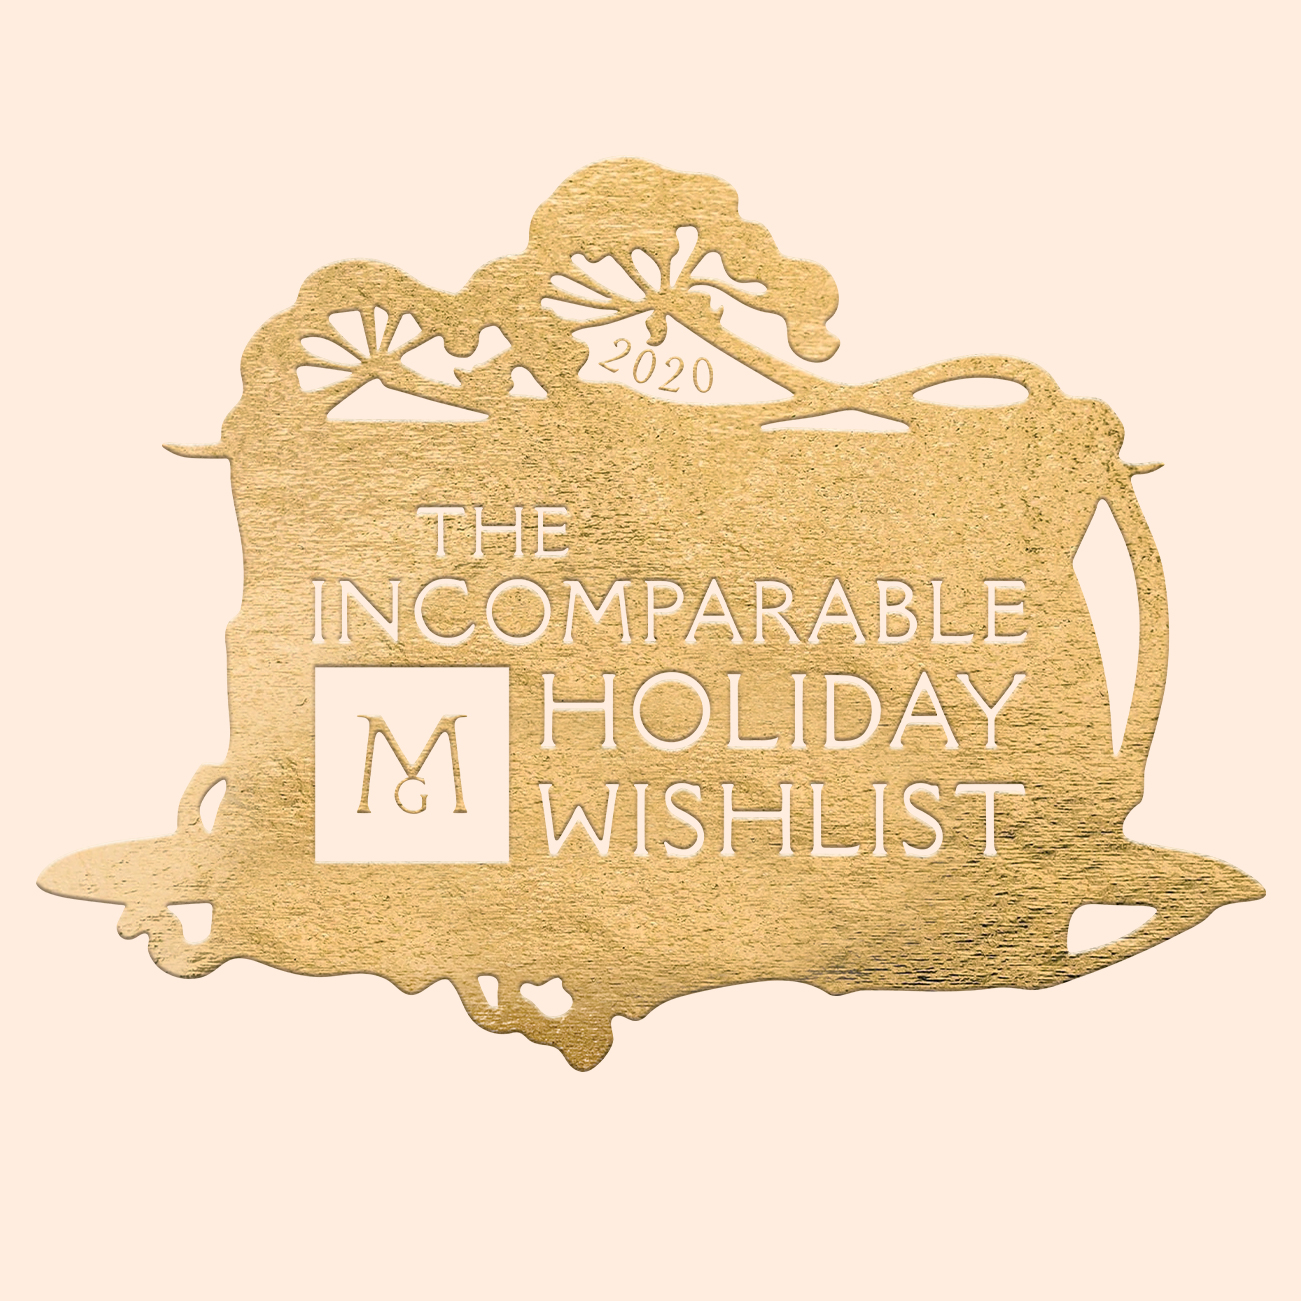 The Incomparable Holiday Wishlist